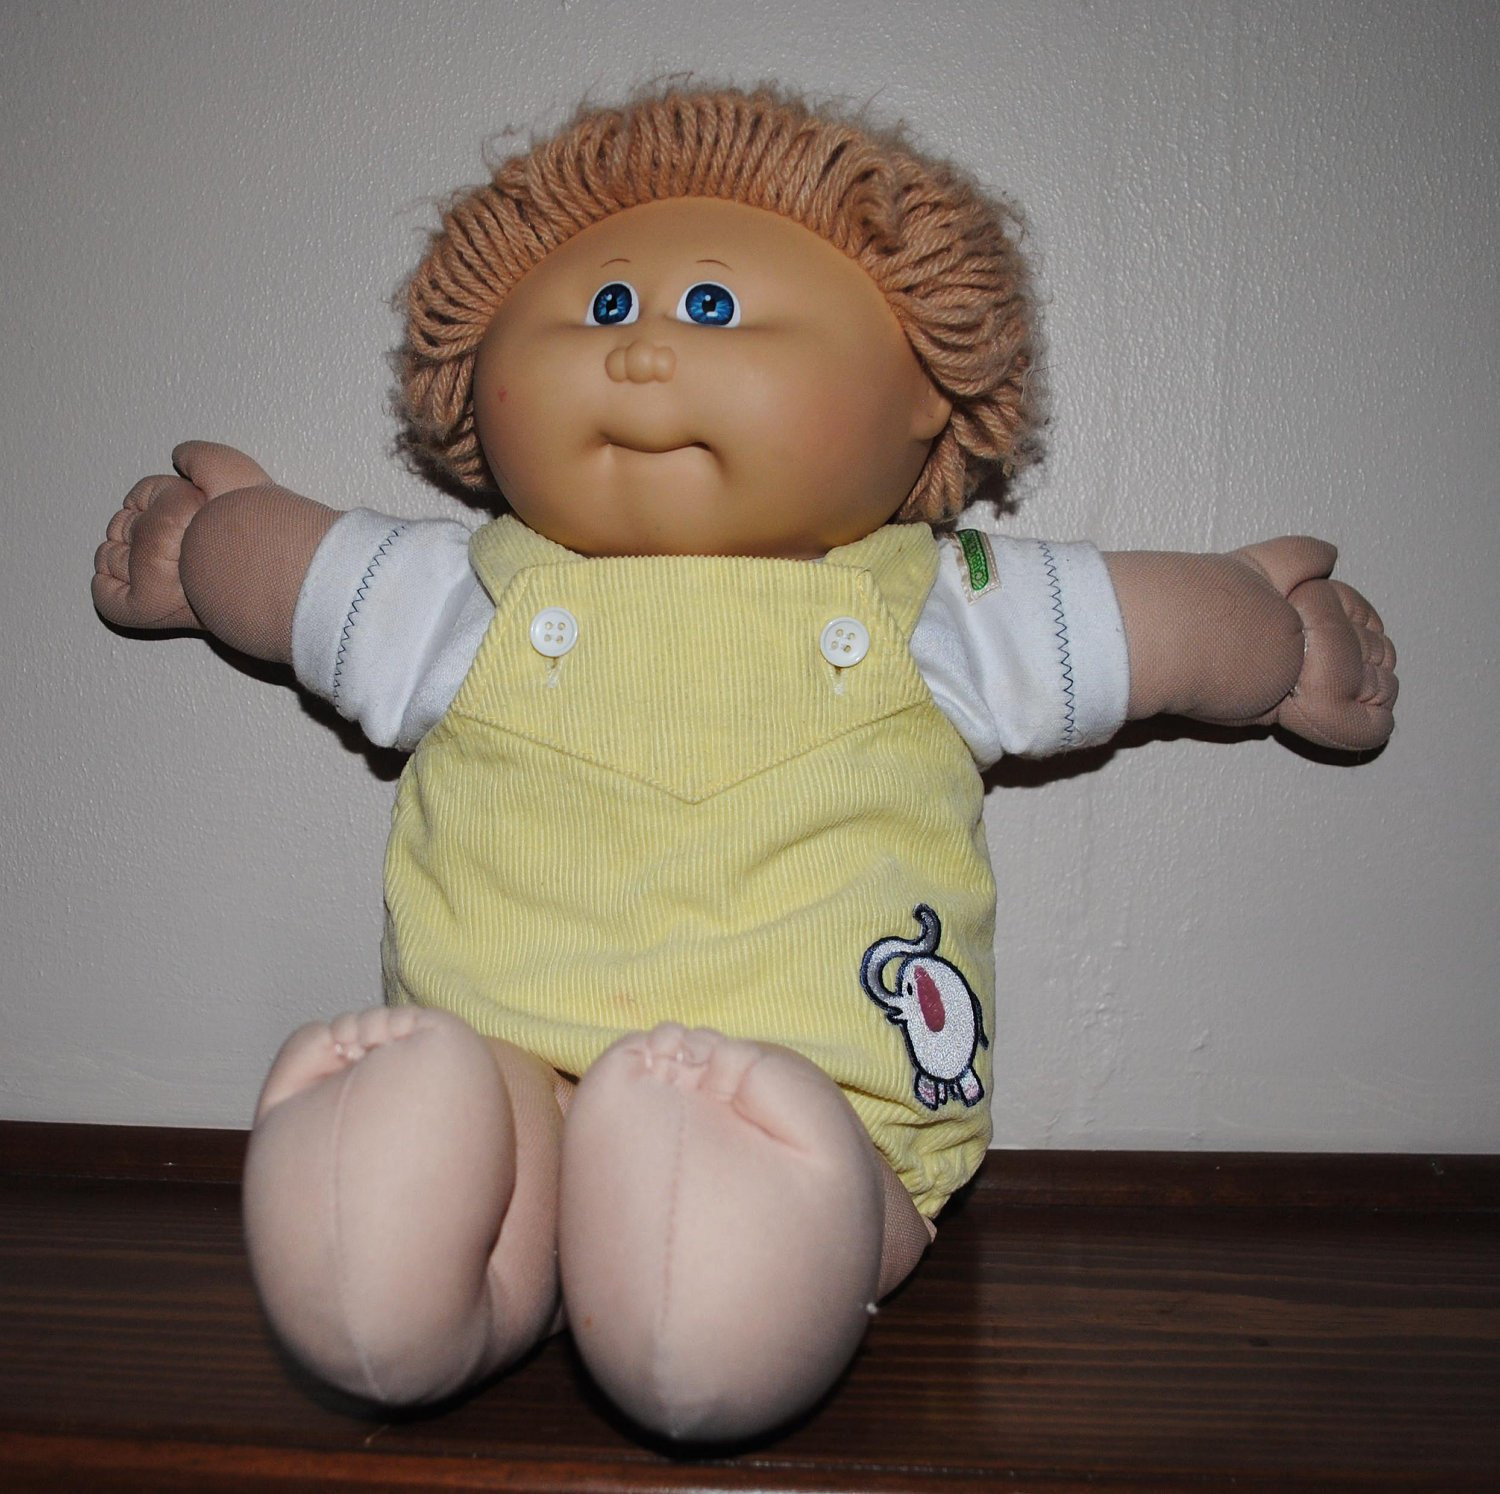 Best Of original Cabbage Patch Kid Doll 1982 Old Cabbage Patch Doll Of Wonderful 47 Ideas Old Cabbage Patch Doll